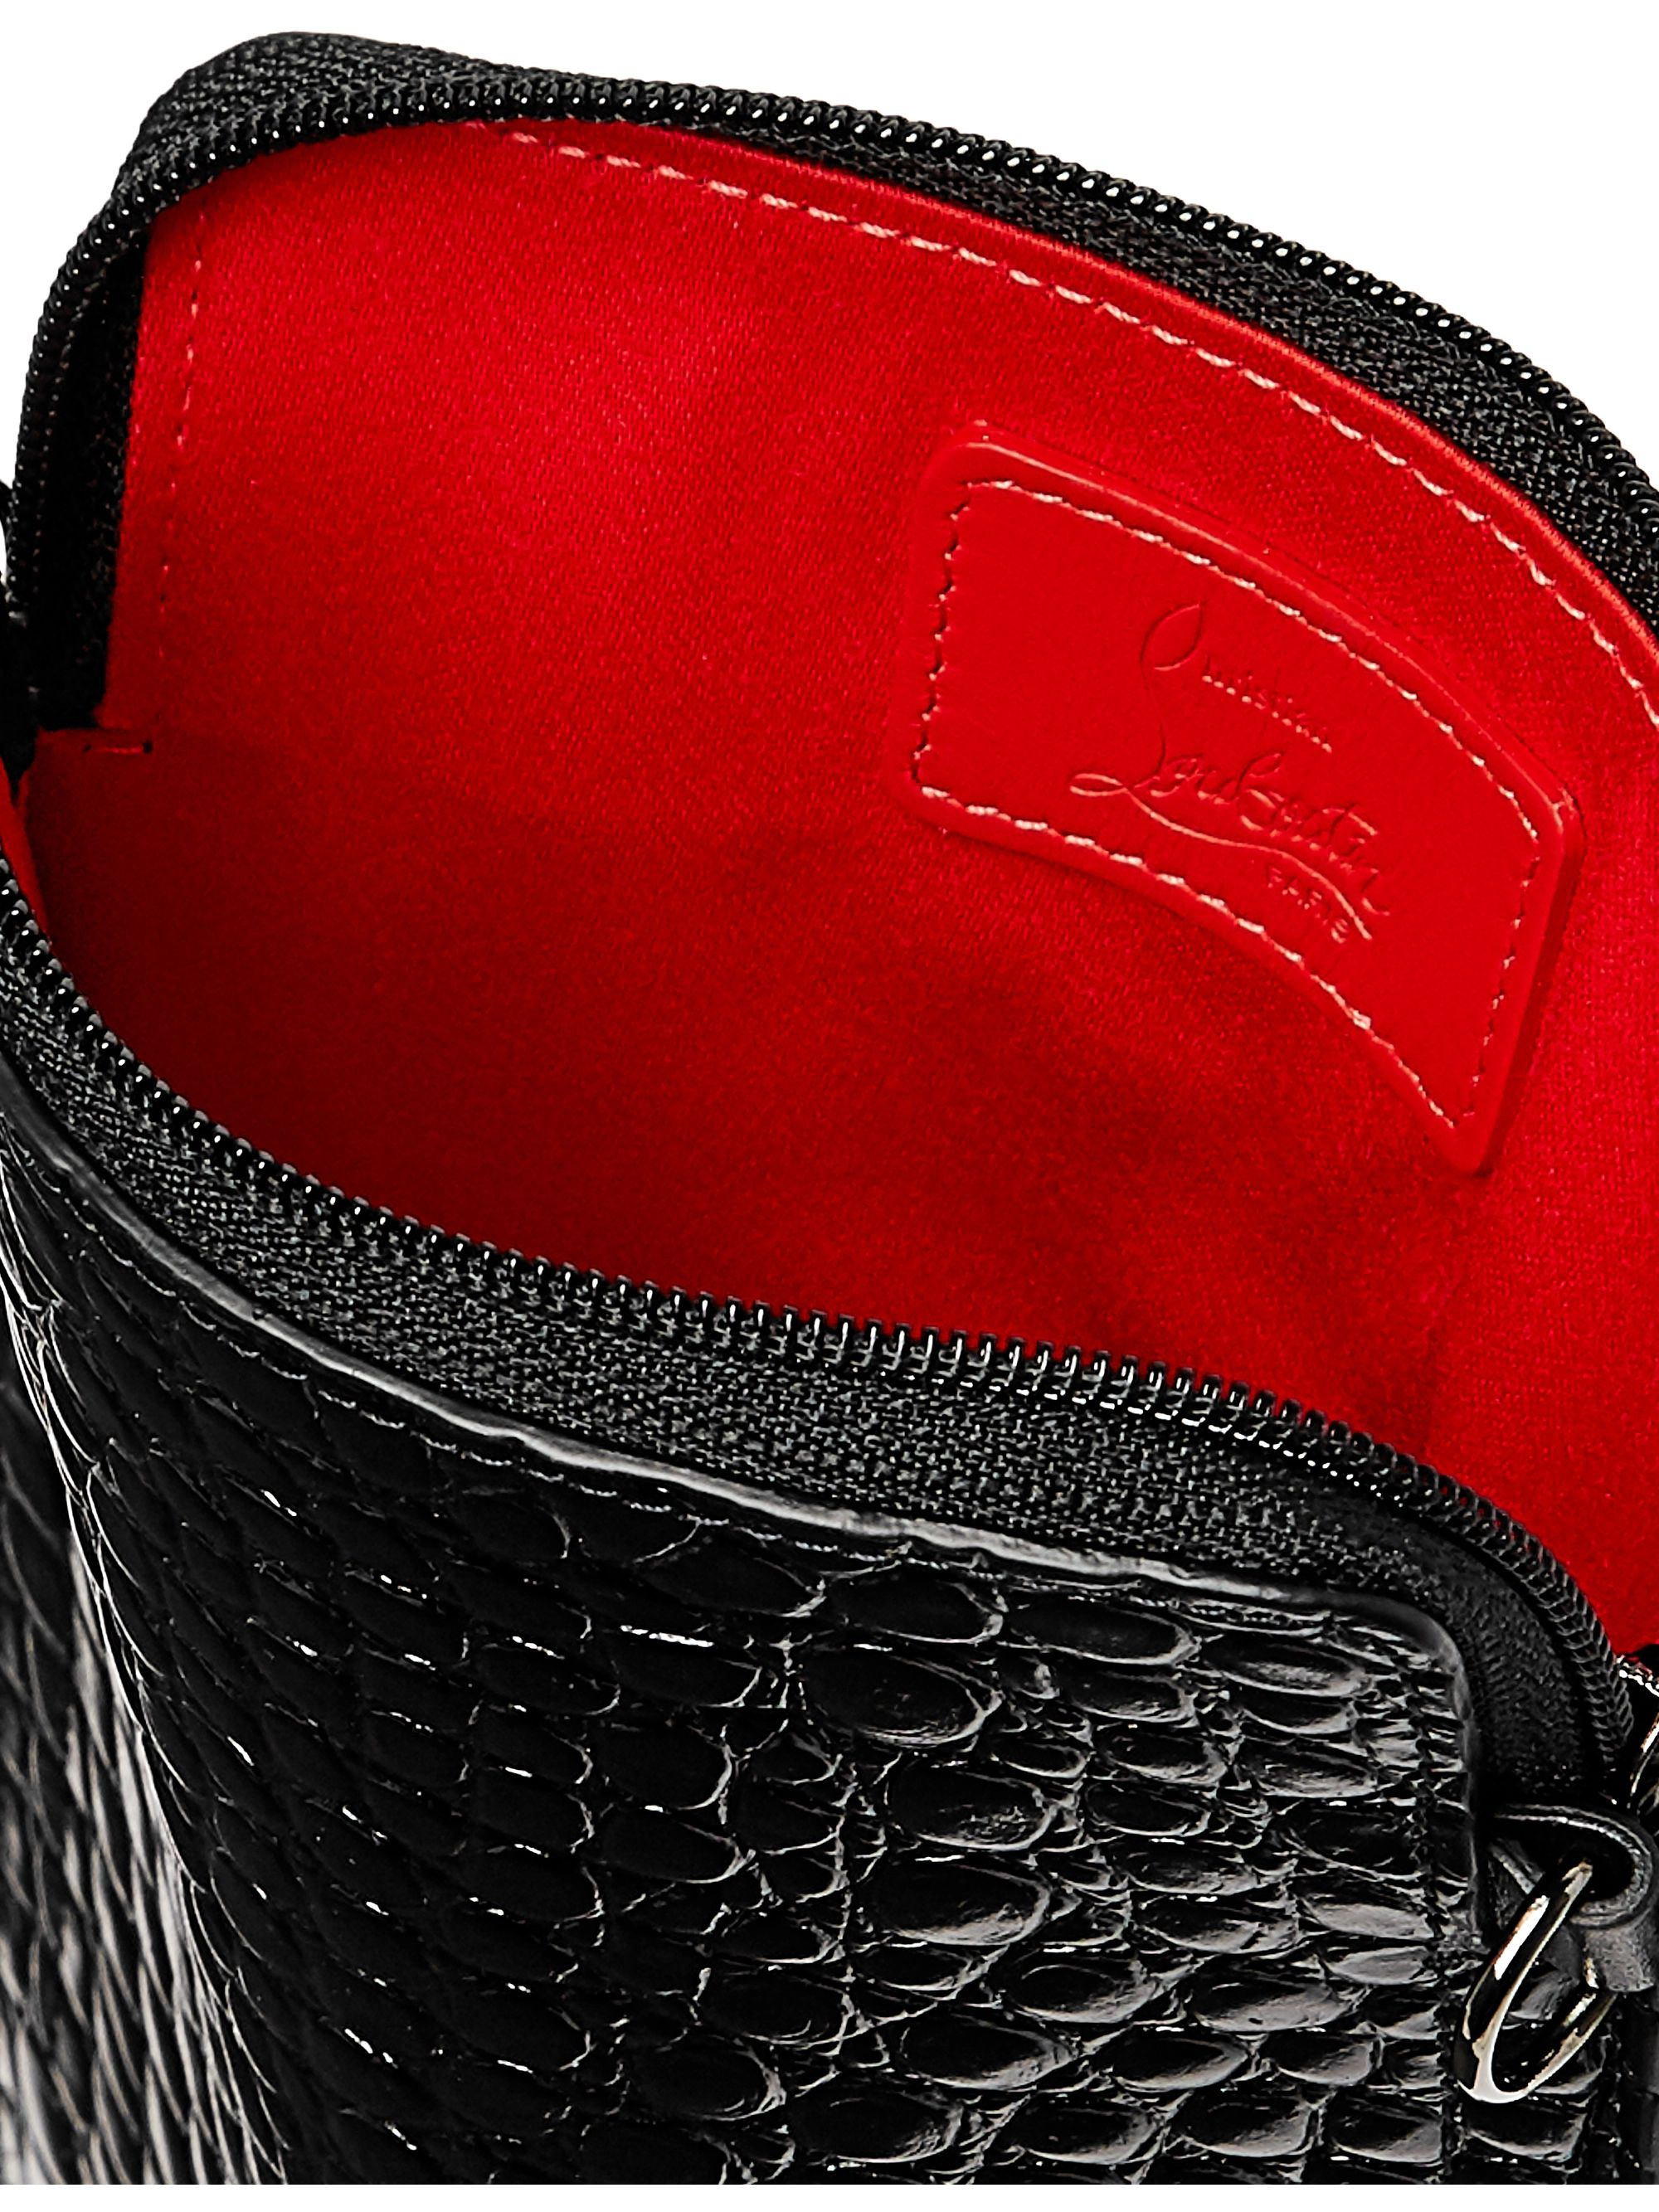 Christian Louboutin Croc-Effect Patent-Leather Pouch